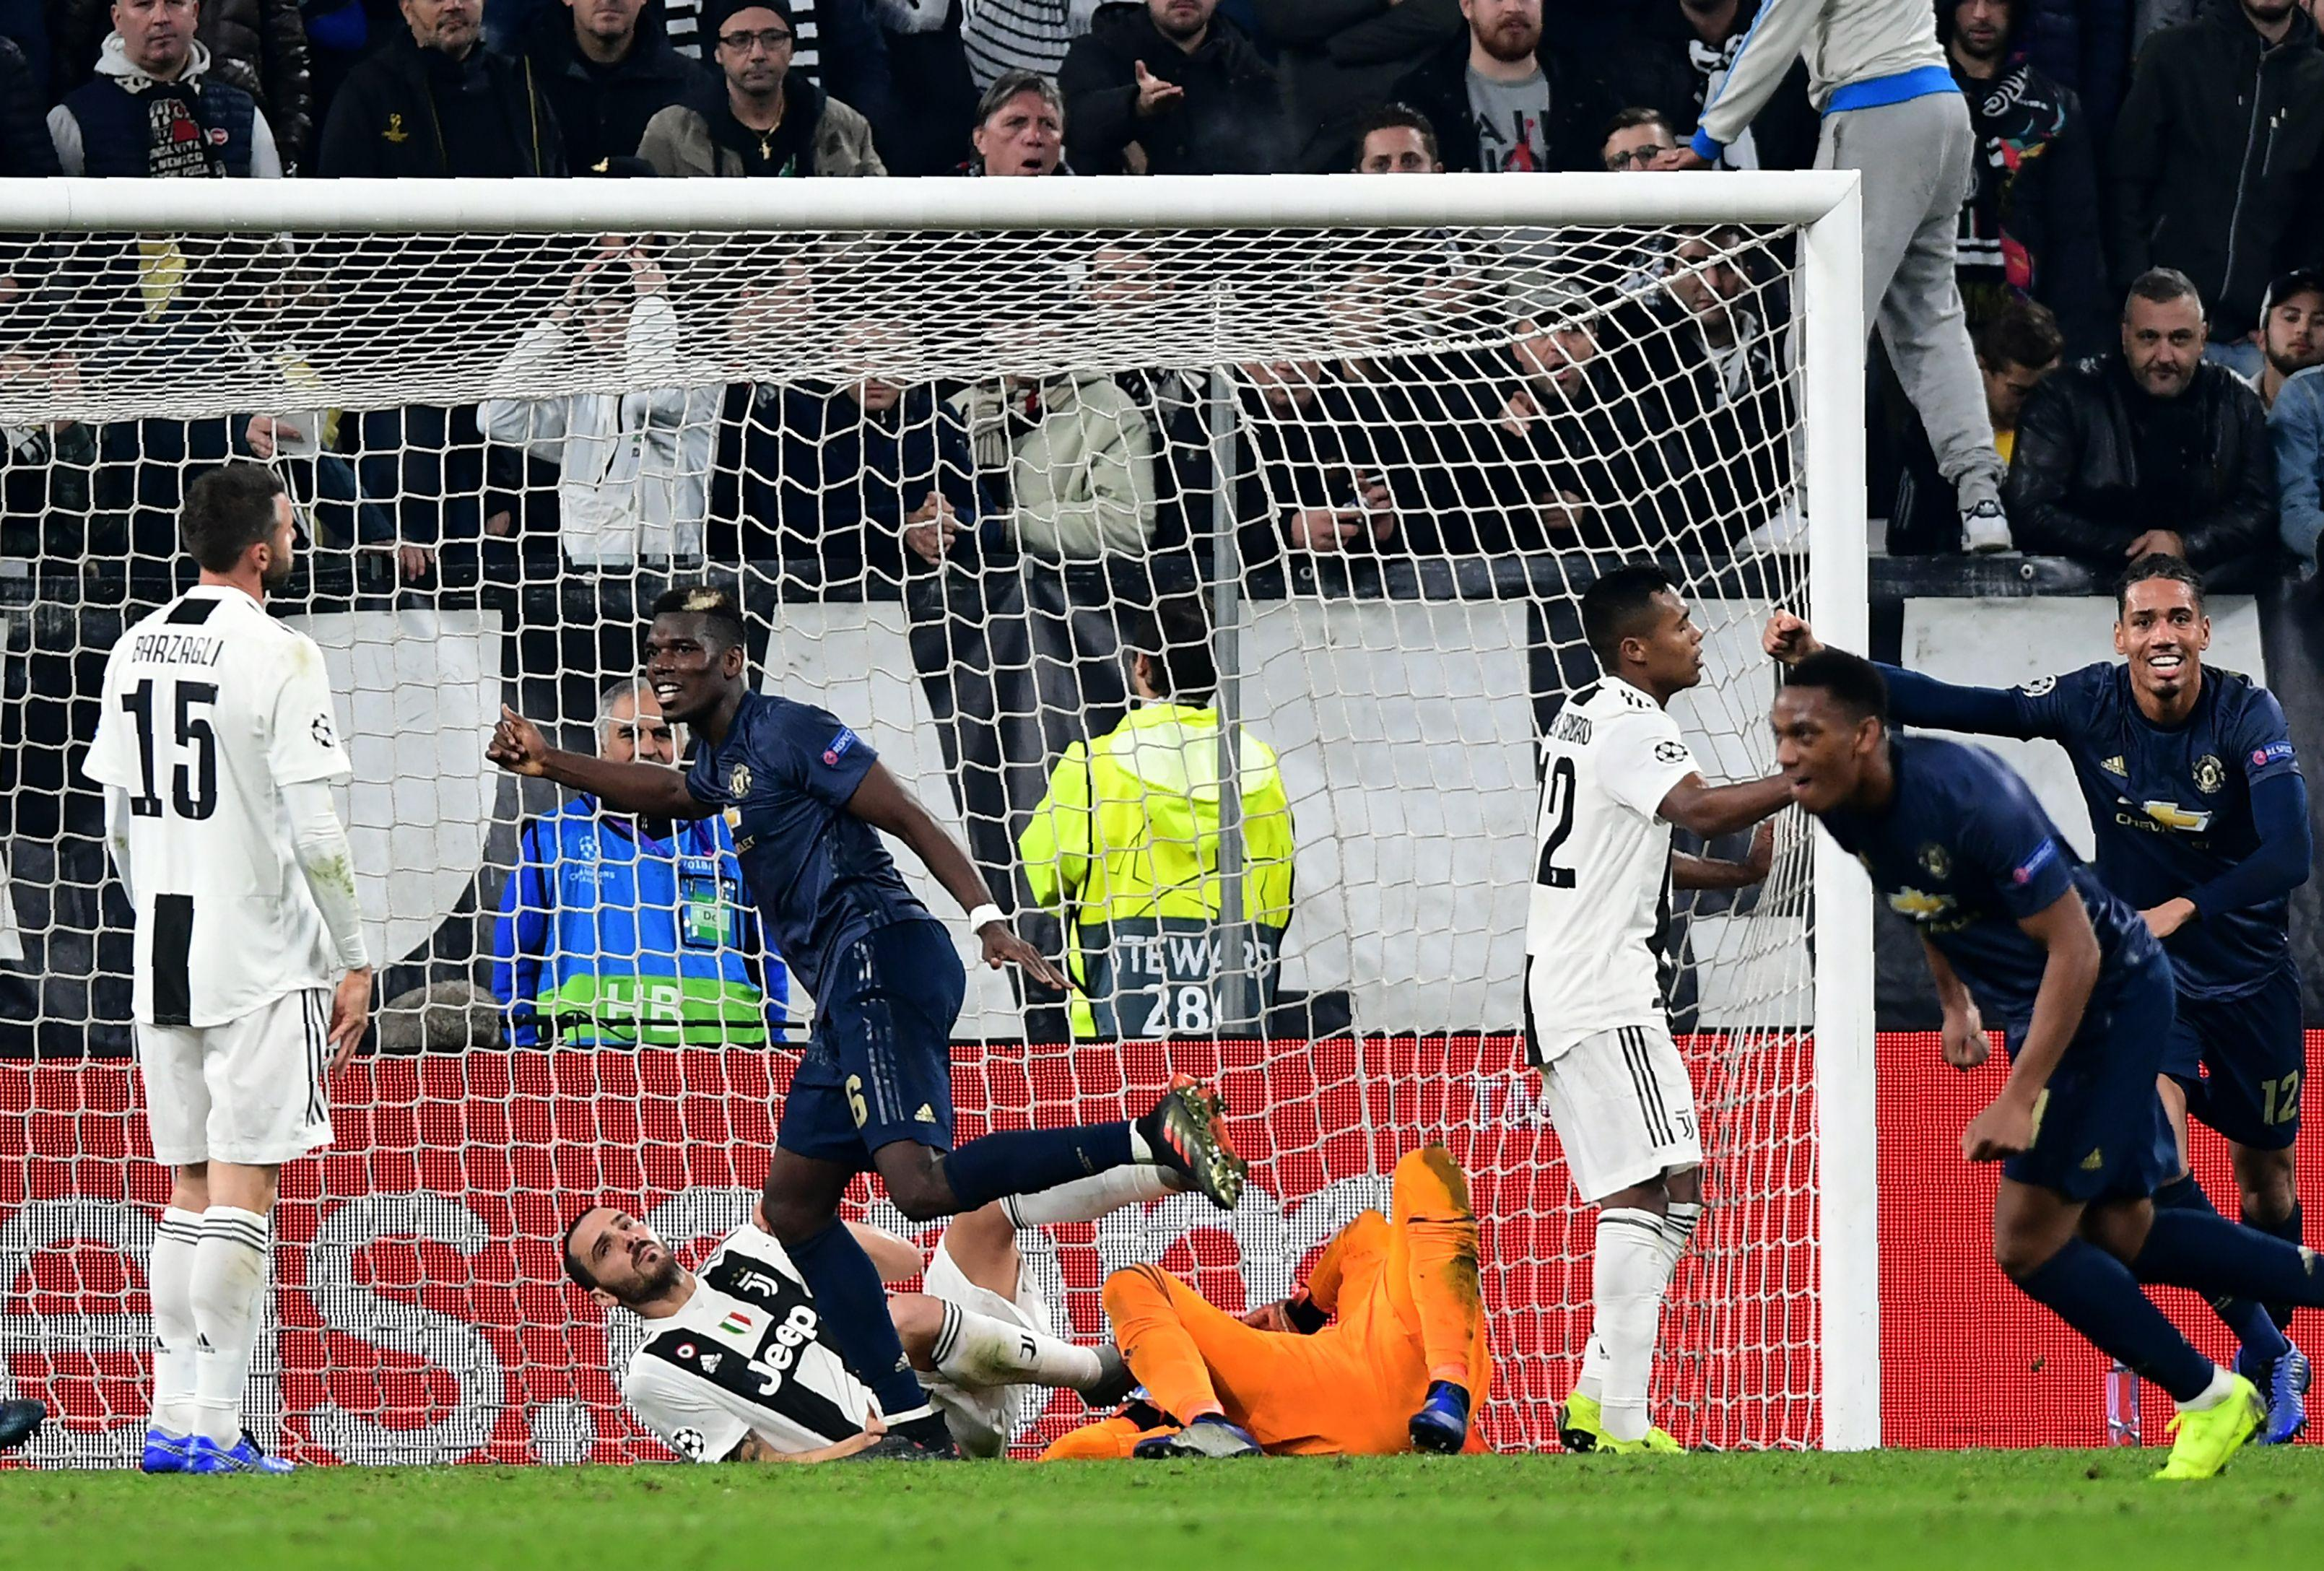 Sandro was on the losing side as Juventus were beaten by Manchester United in Turin